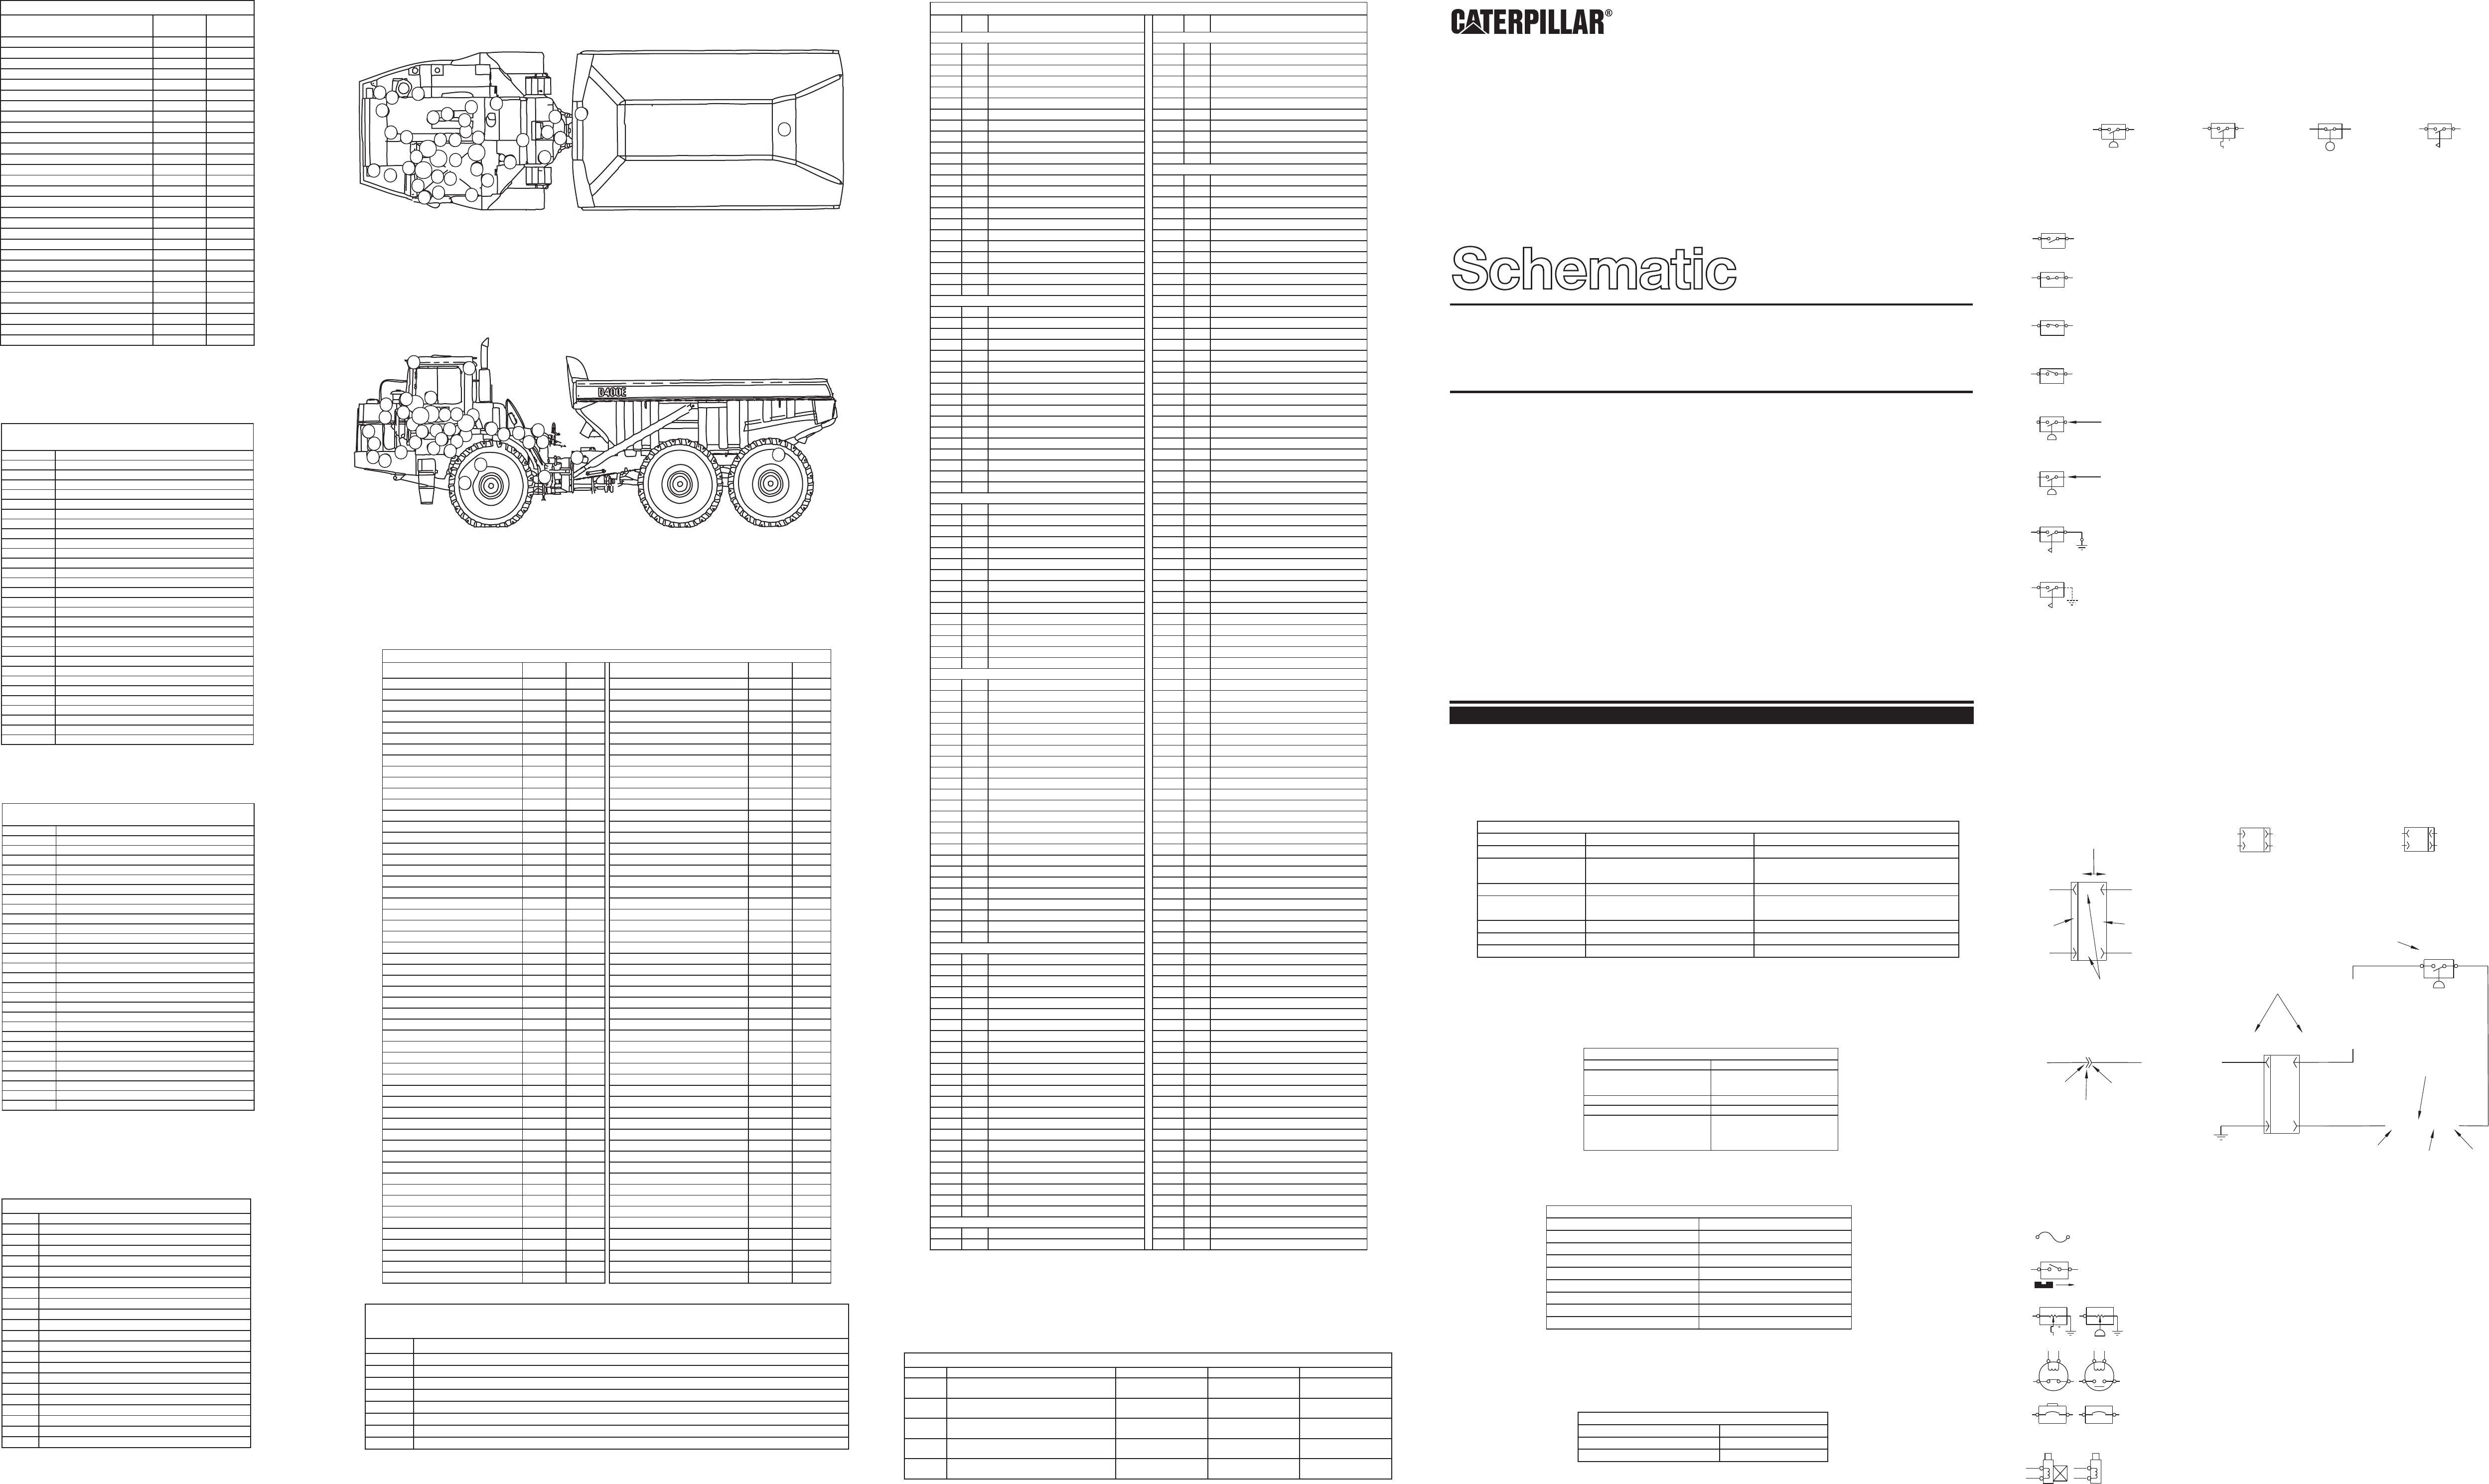 D350E/D400E II ARTICULATED TRUCK ELECTRICAL SCHEMATIC   CAT ... on transformer diagrams, motor diagrams, battery diagrams, switch diagrams, gmc fuse box diagrams, lighting diagrams, hvac diagrams, troubleshooting diagrams, honda motorcycle repair diagrams, internet of things diagrams, pinout diagrams, led circuit diagrams, smart car diagrams, series and parallel circuits diagrams, electronic circuit diagrams, electrical diagrams, engine diagrams, friendship bracelet diagrams, sincgars radio configurations diagrams,